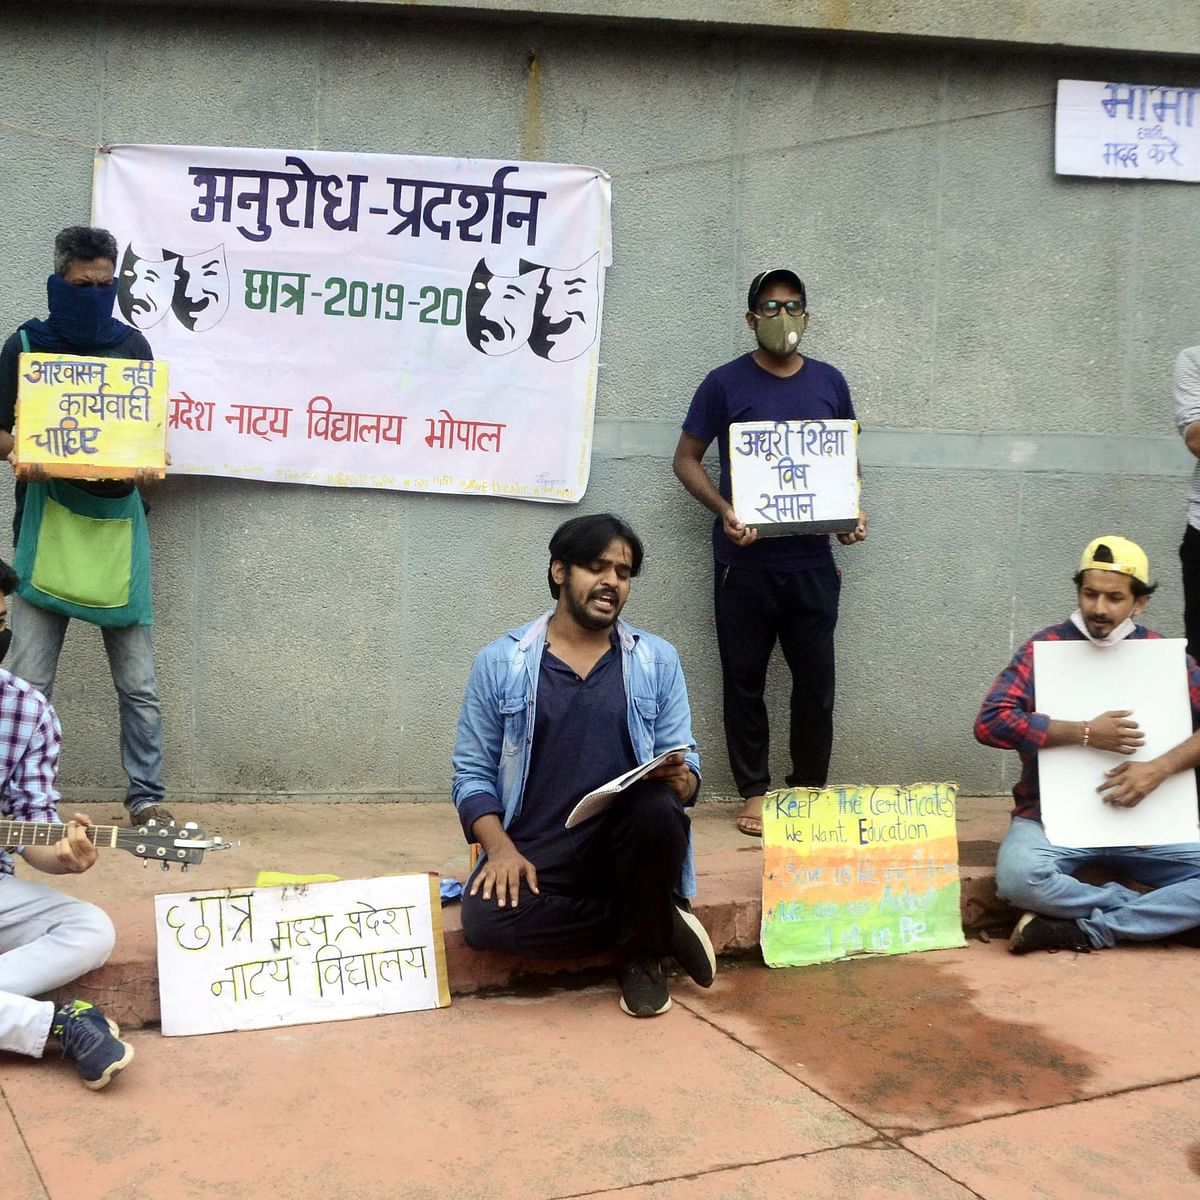 Bhopal: MP School of drama rusticates 8 students who staged protest, demand classes